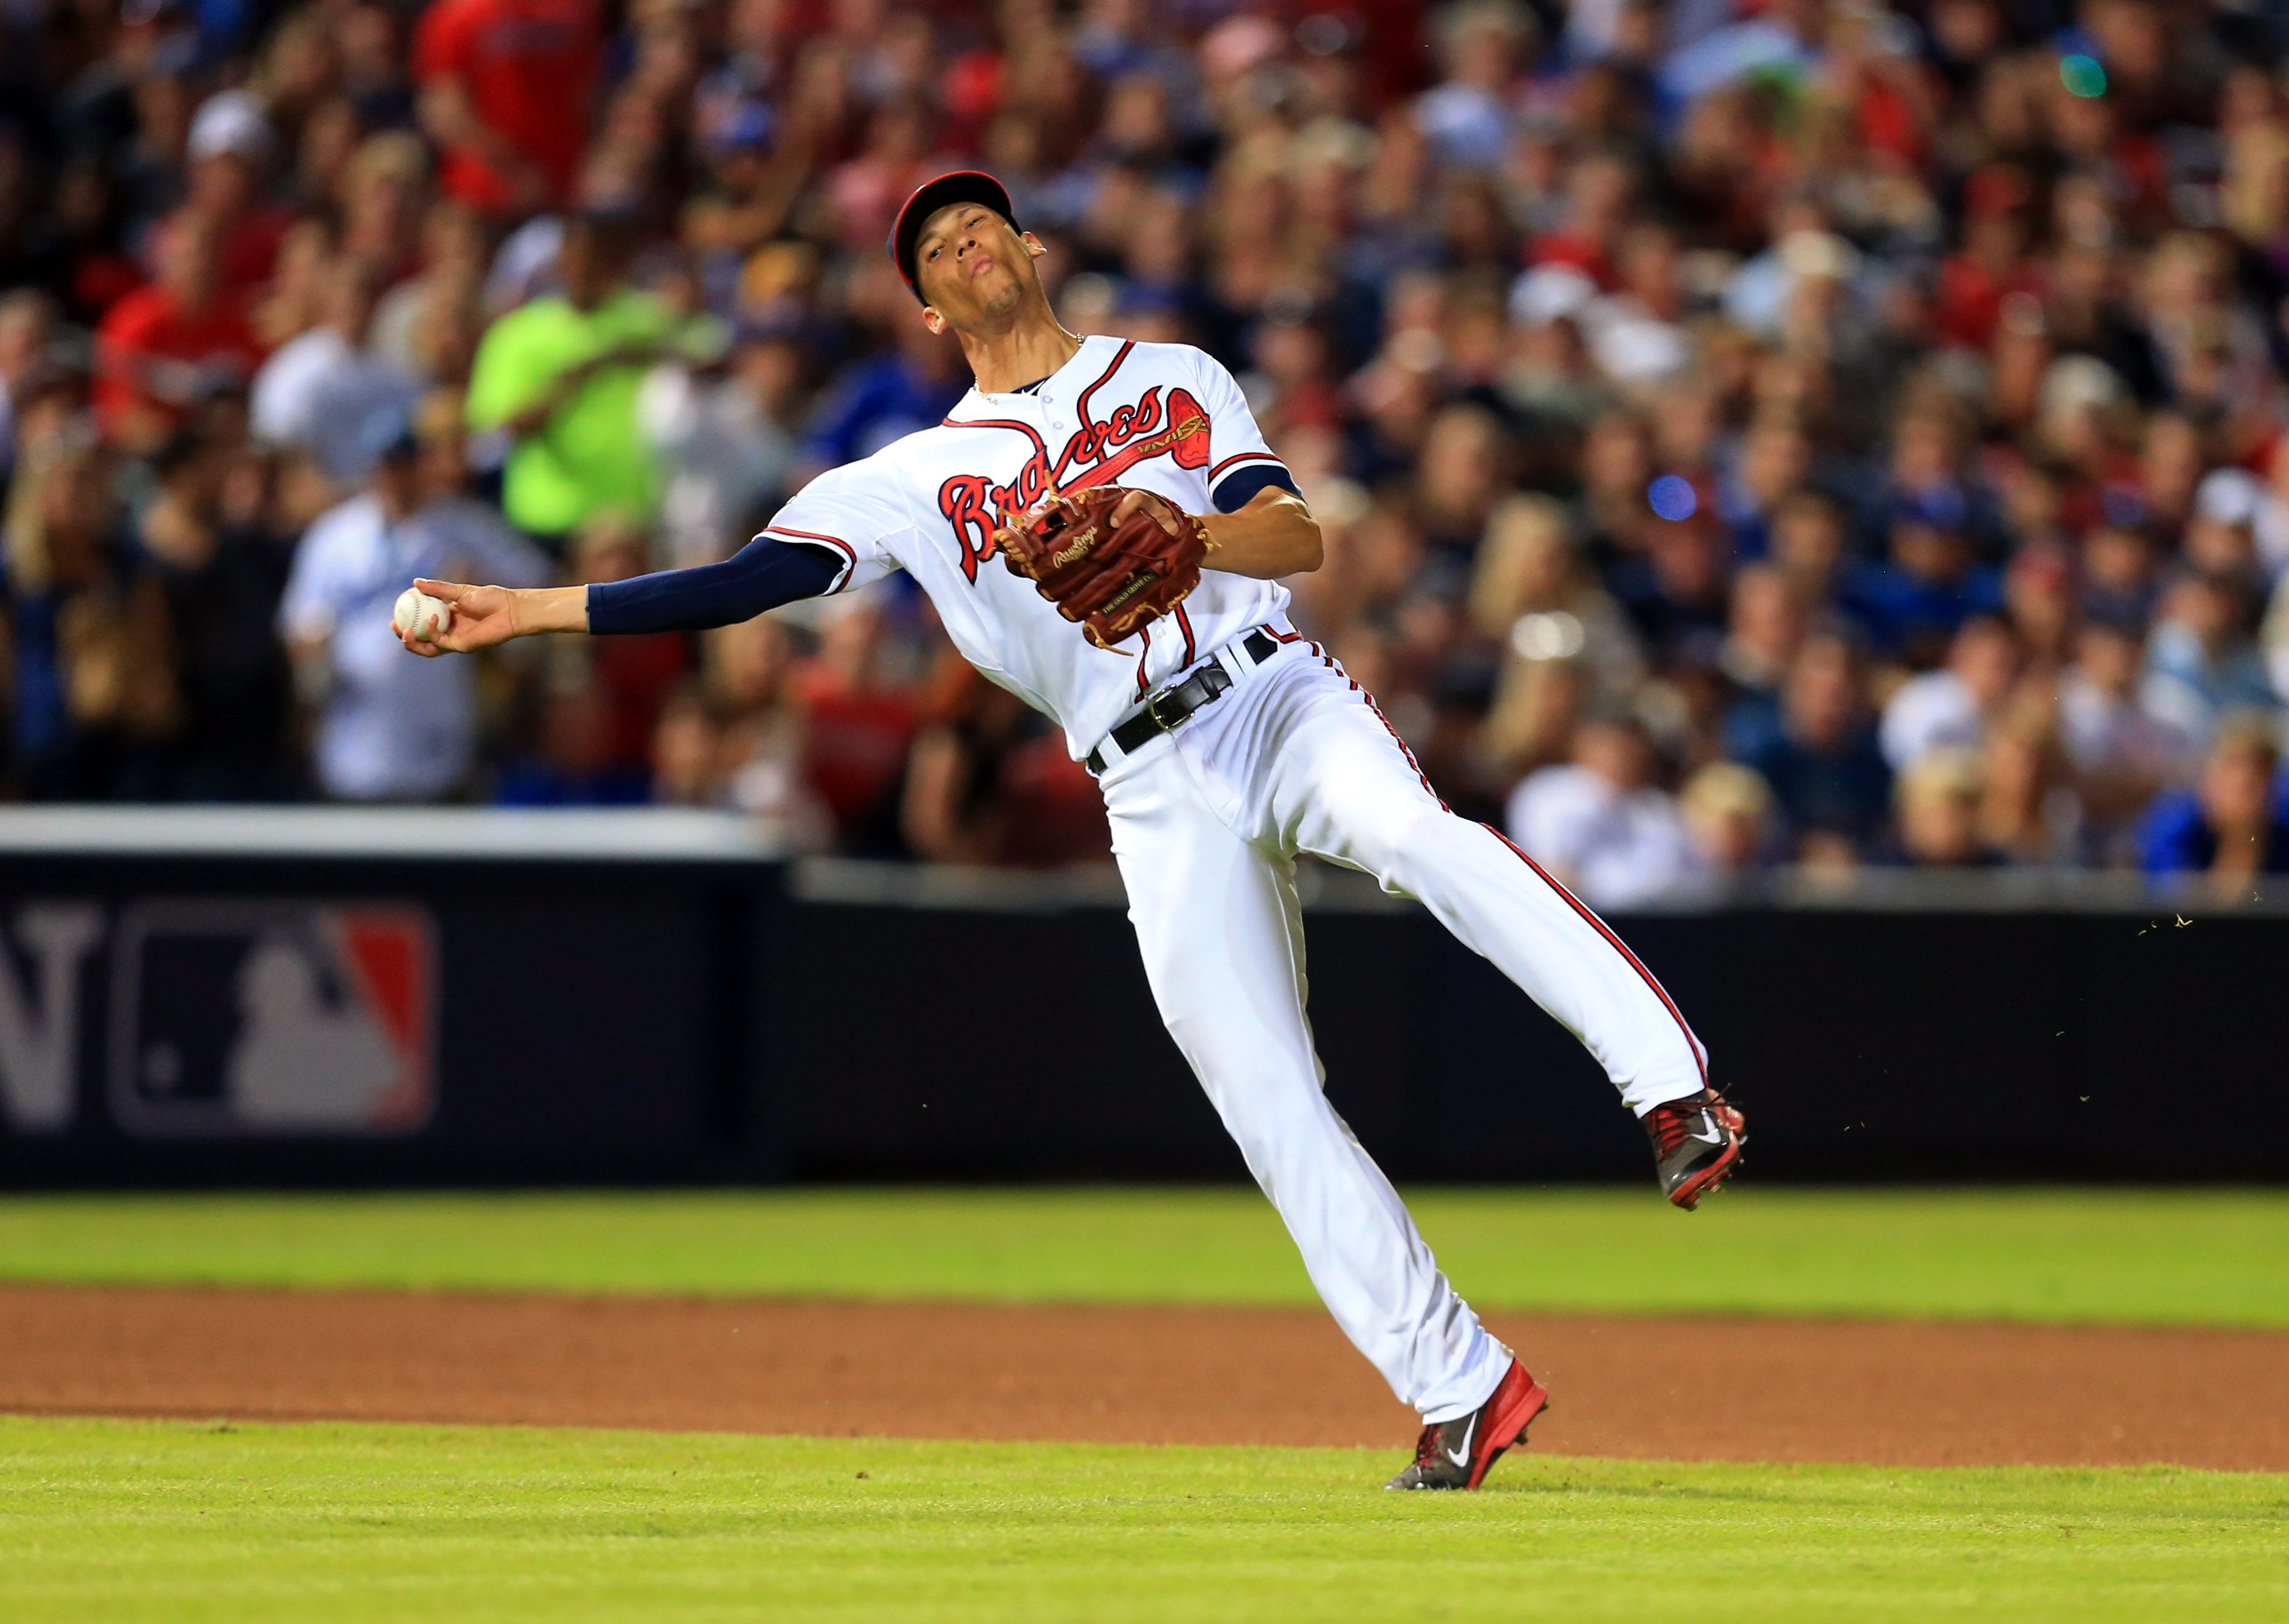 Crowdcam Hot Shot Atlanta Braves Shortstop Andrelton Simmons Throws To First Base During The Seventh Inning Against The Los Atlanta Braves Braves Turner Field